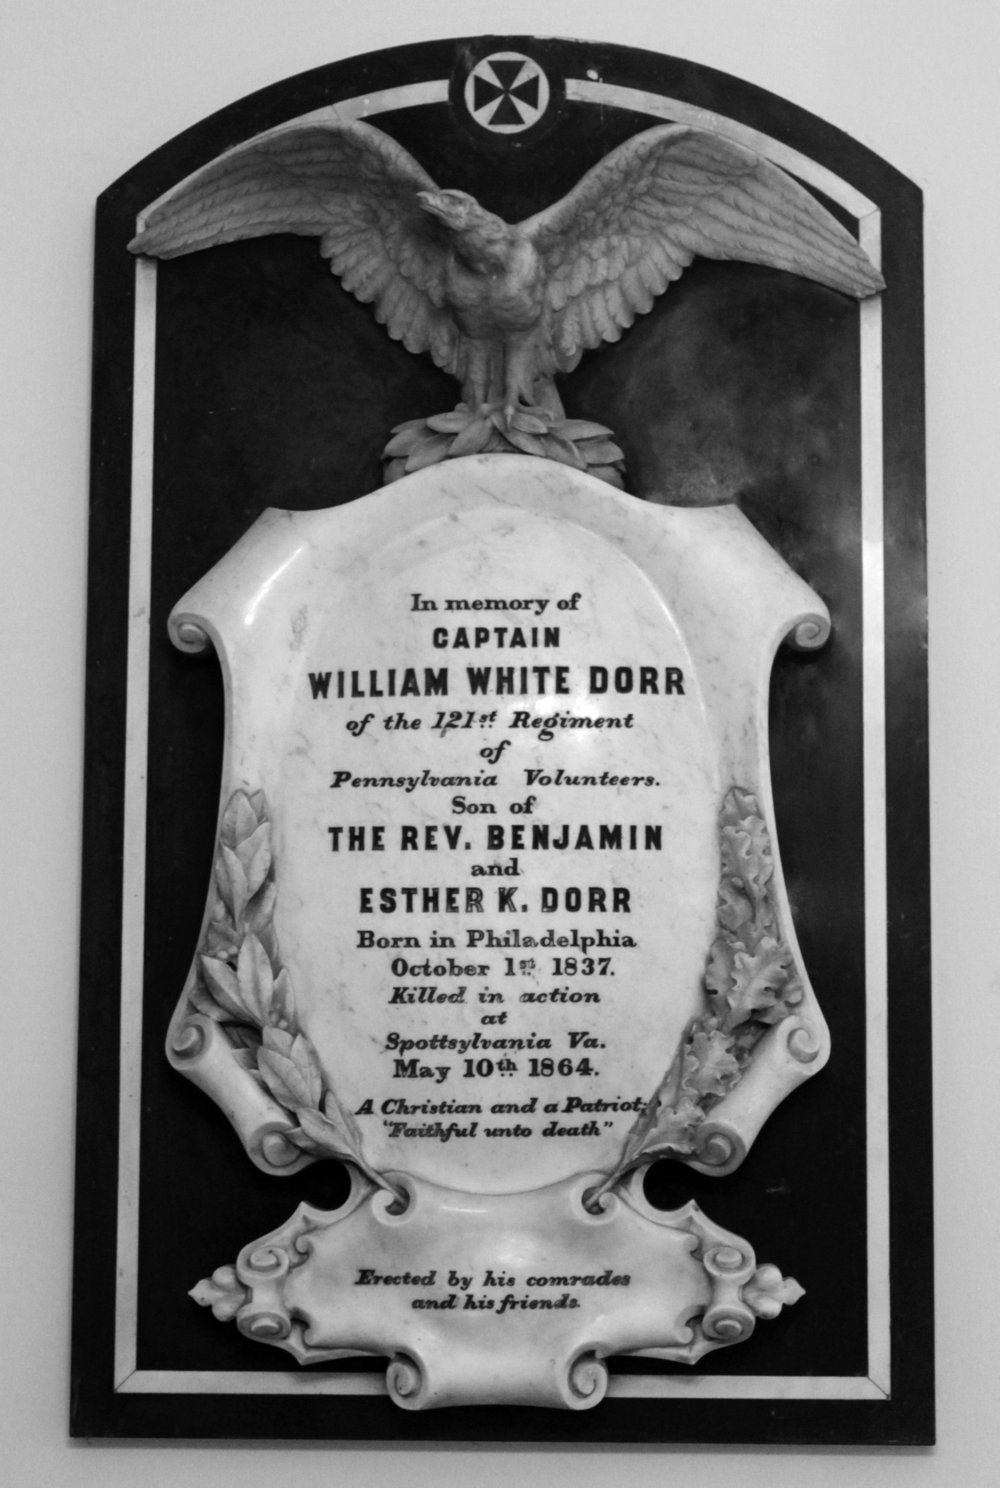 Memorial to Capt. William White Dorr.  Courtesy of Philadelphia's Christ Church. Photo by Materials Conservation Co.